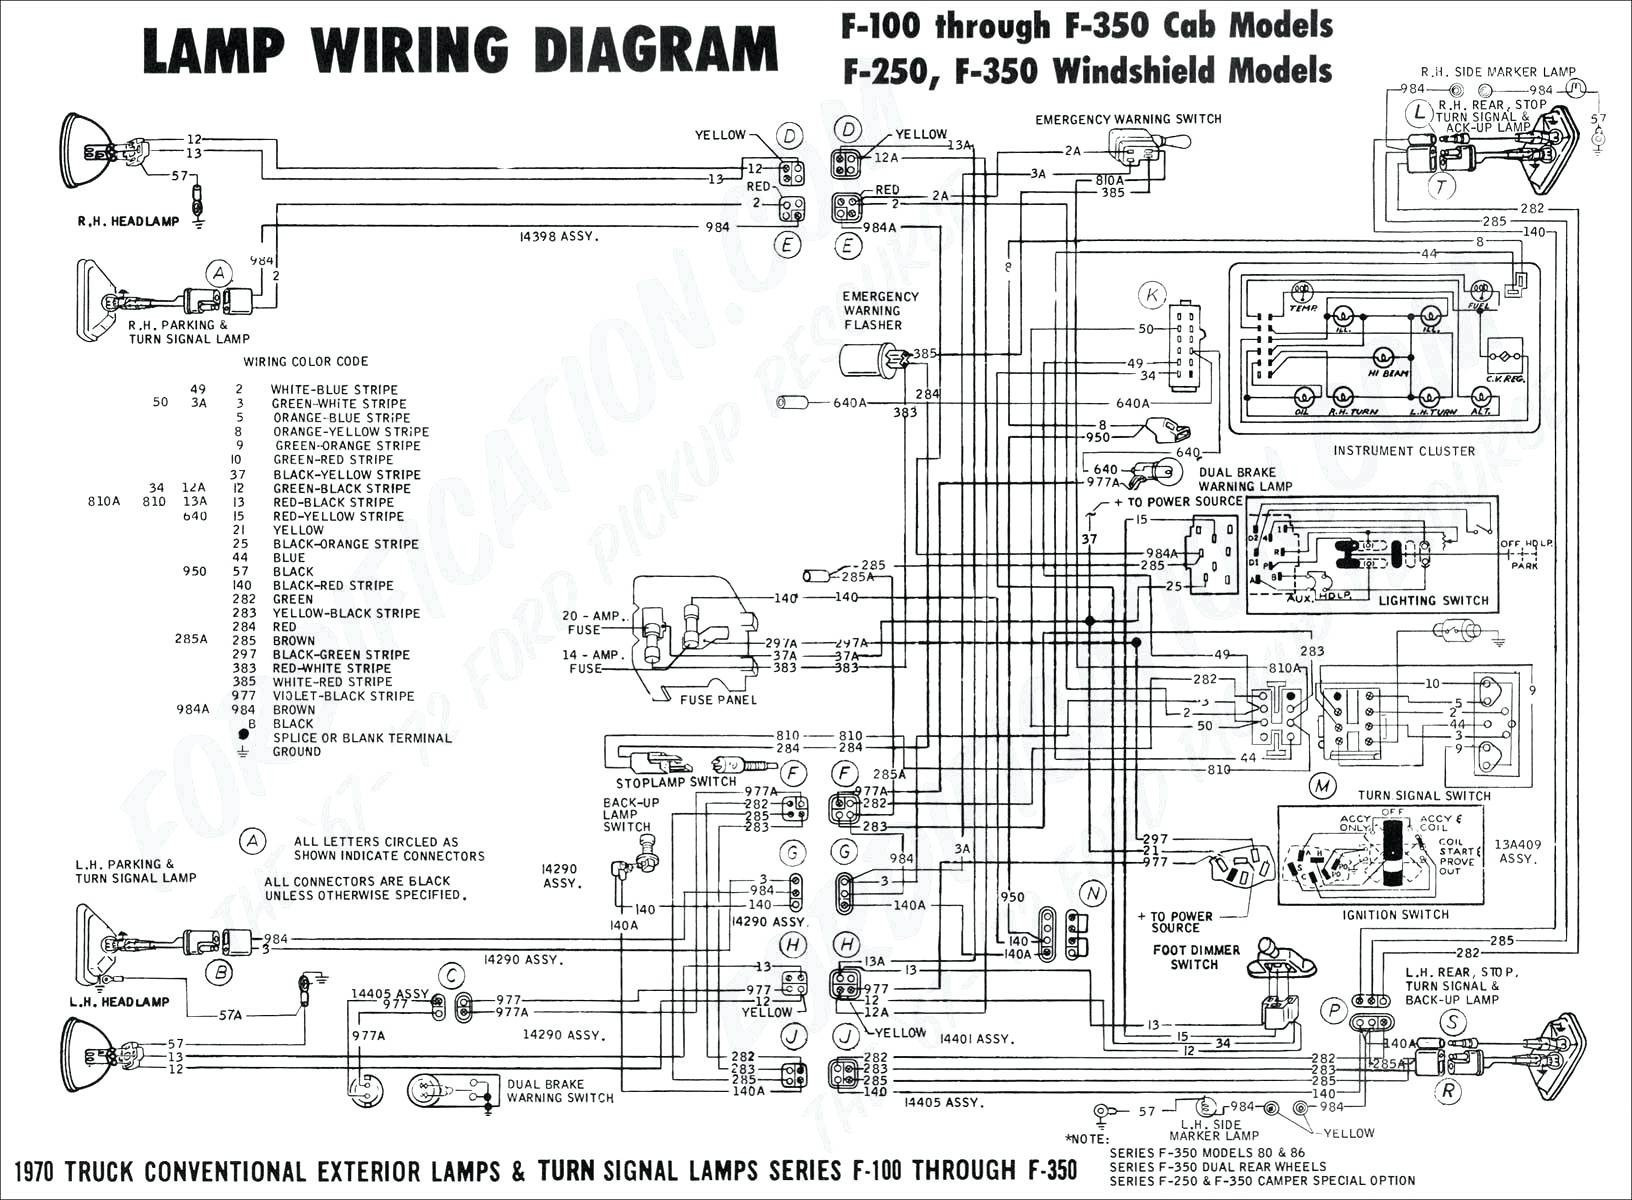 [SCHEMATICS_4HG]  ZN_1213] 98 Expedition Radio Wire Diagram | 1997 Ford Expedition Wiring Diagram |  | Xorcede Winn Mentra Mohammedshrine Librar Wiring 101